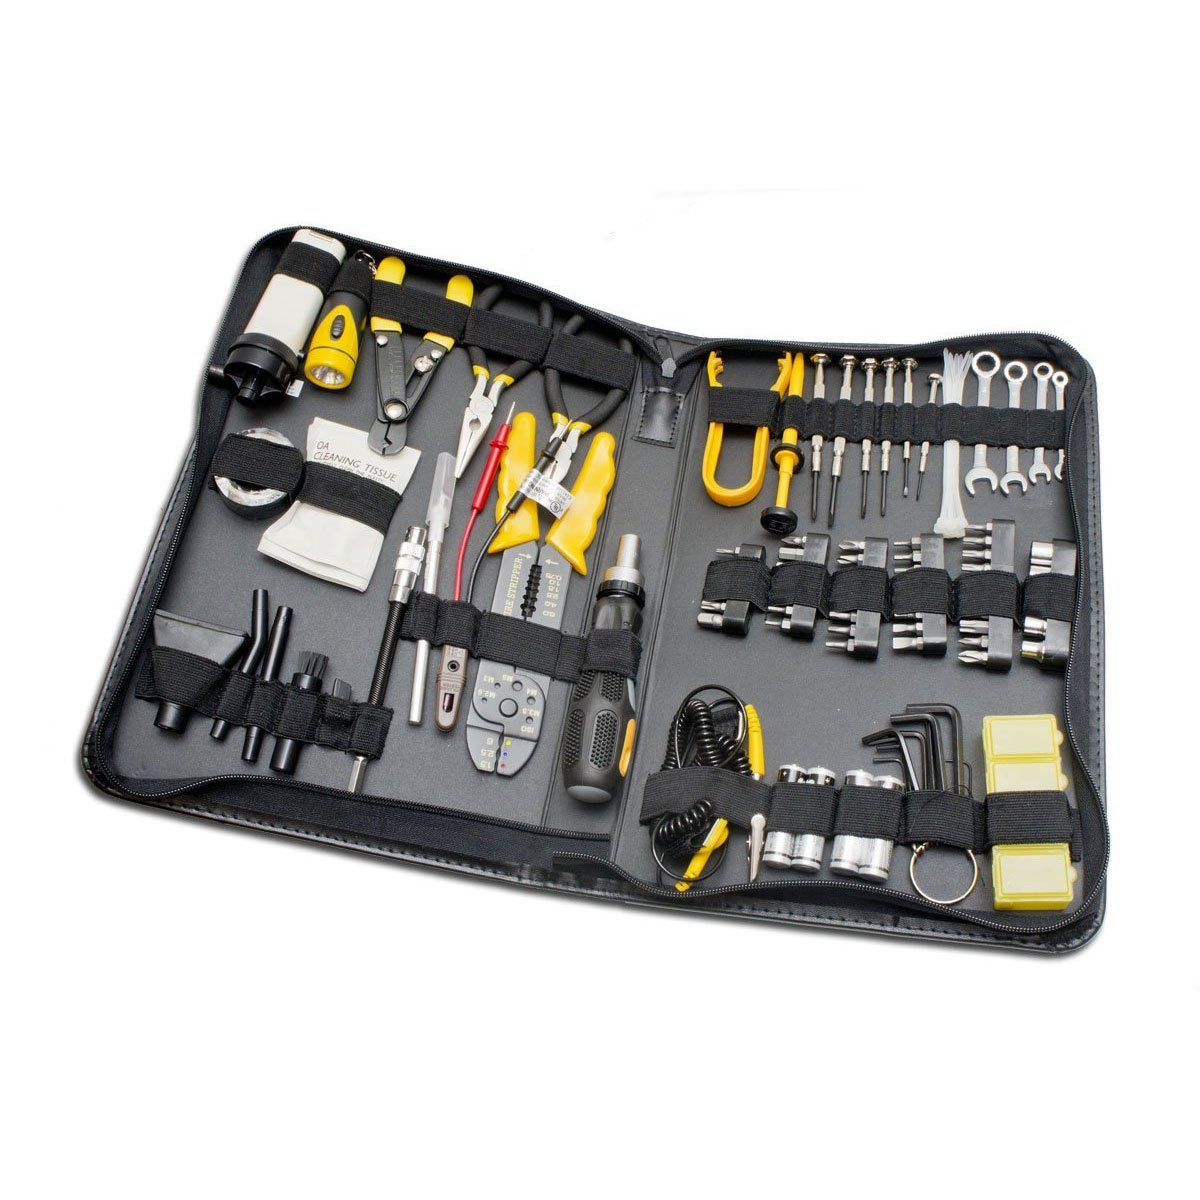 100 Piece Computer Technician Tool Kit for Repairing, Wiring, Cleaning, and Testing